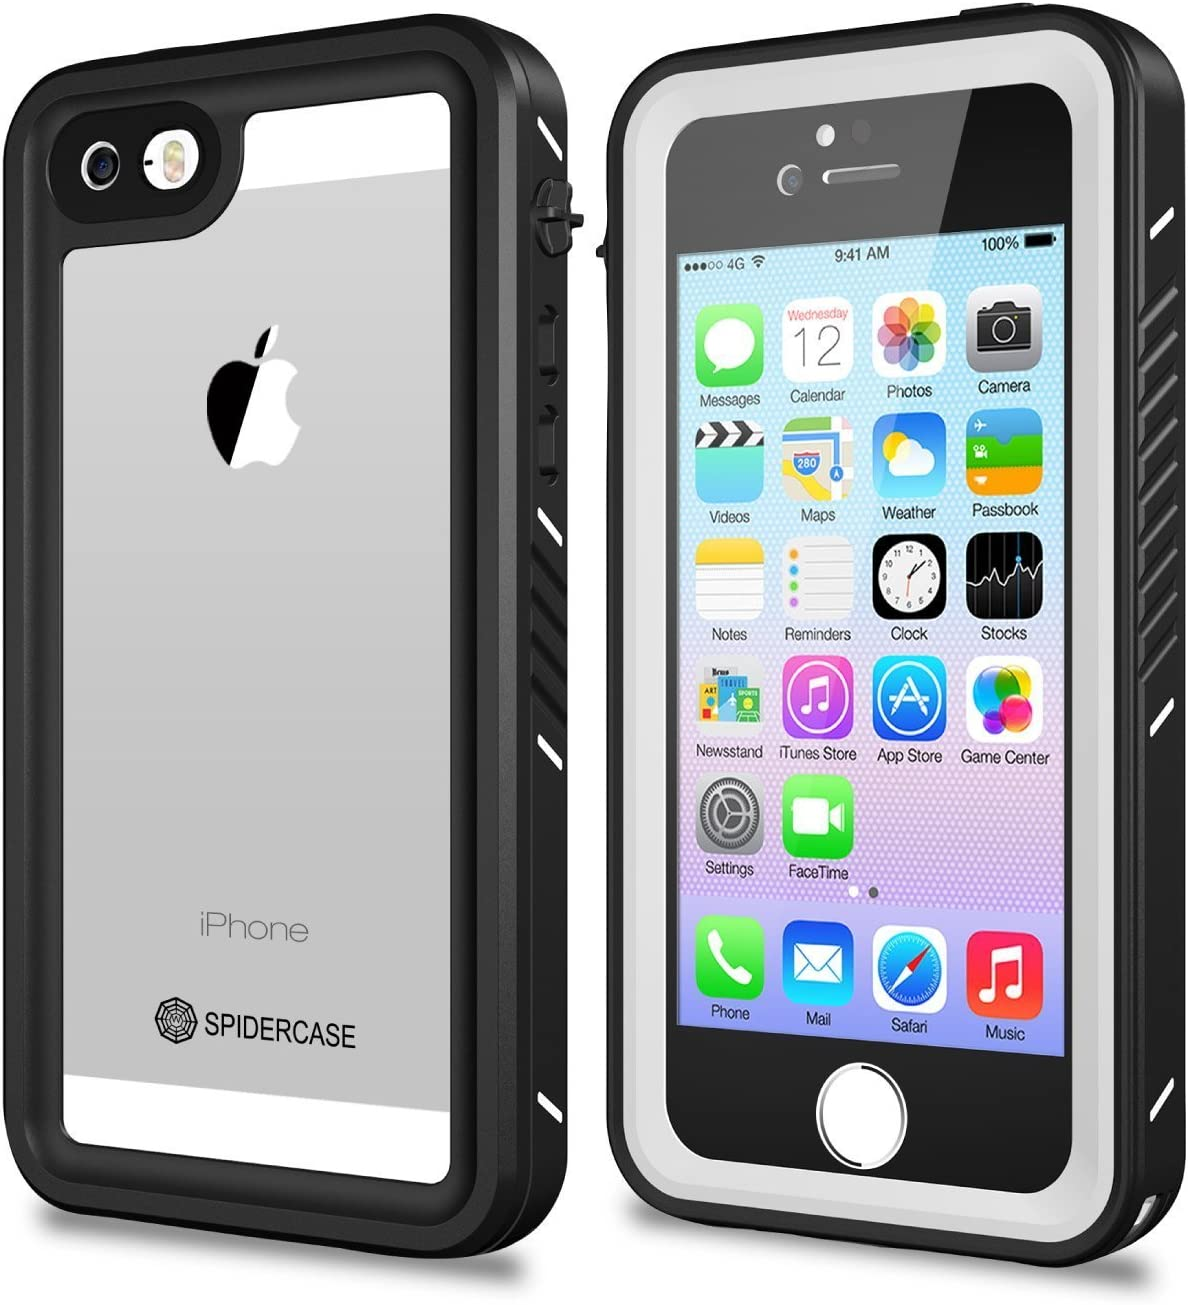 SPIDERCASE iPhone 5/5S/SE Waterproof Case, Full Body Protective Cover Rugged Dustproof Snowproof Waterproof Case with Touch ID for iPhone 5S 5 SE, NOT ...